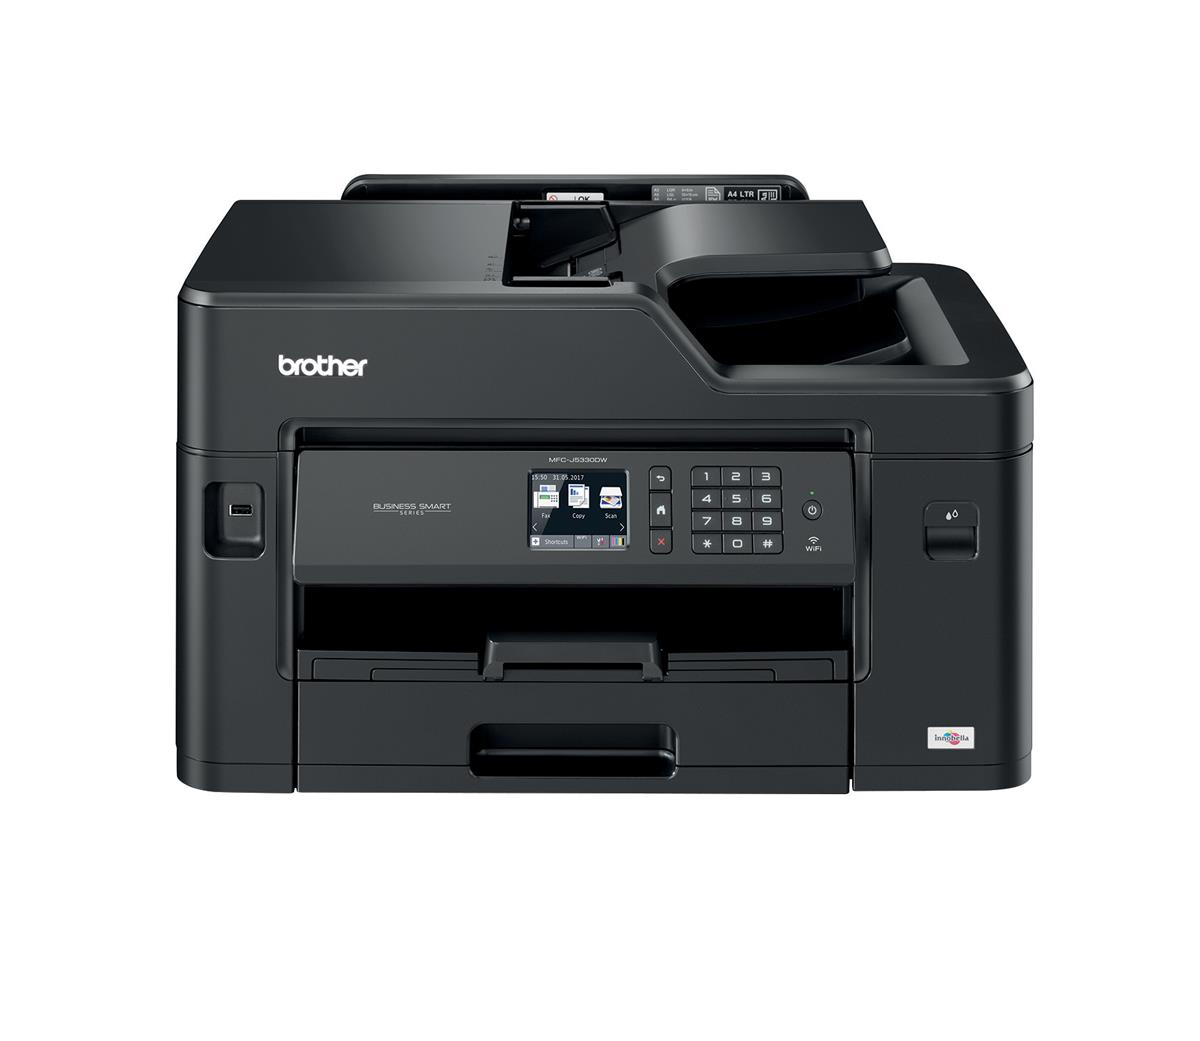 Image for Brother Colour Inkjet Multifunction Printer Wired and Wireless 20ipm A3 Black Ref MFCJ5330DWZU1